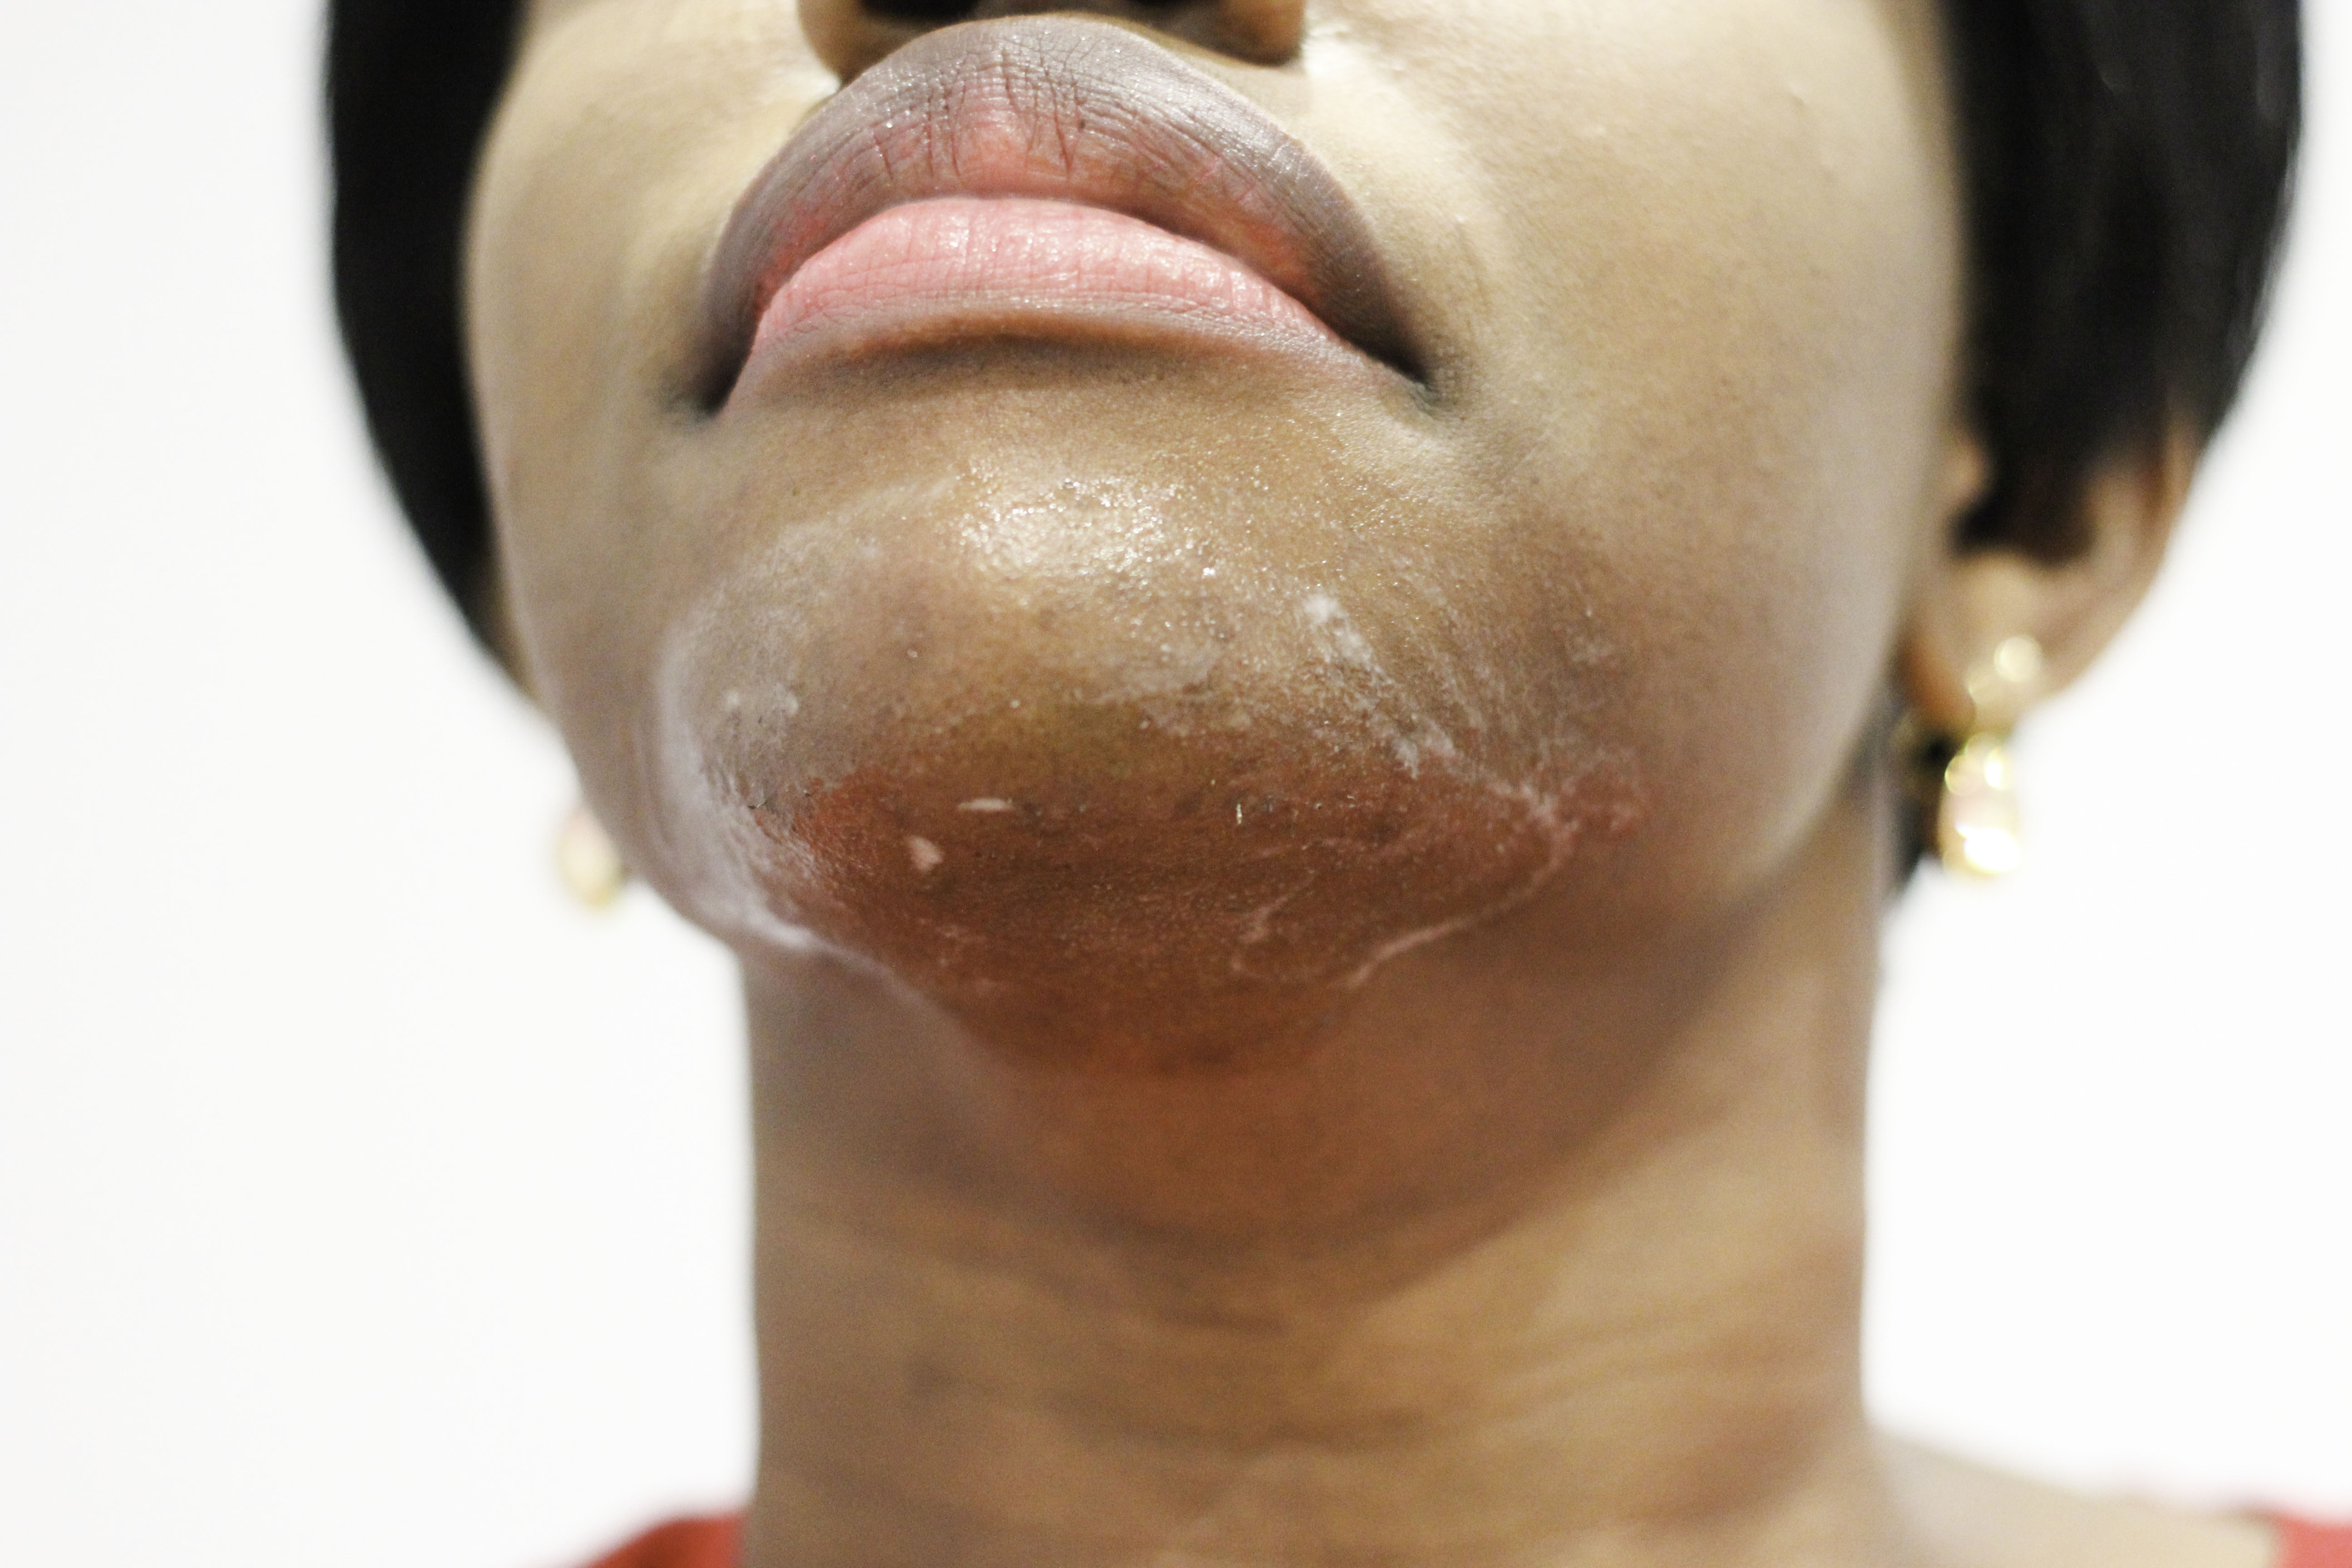 laser hair removal essay The woman, who chose to remain anonymous, explained in an essay for glamour's beauty site lipstickcom that she had never had laser hair removal or even a wax before she purchased a discount laser .